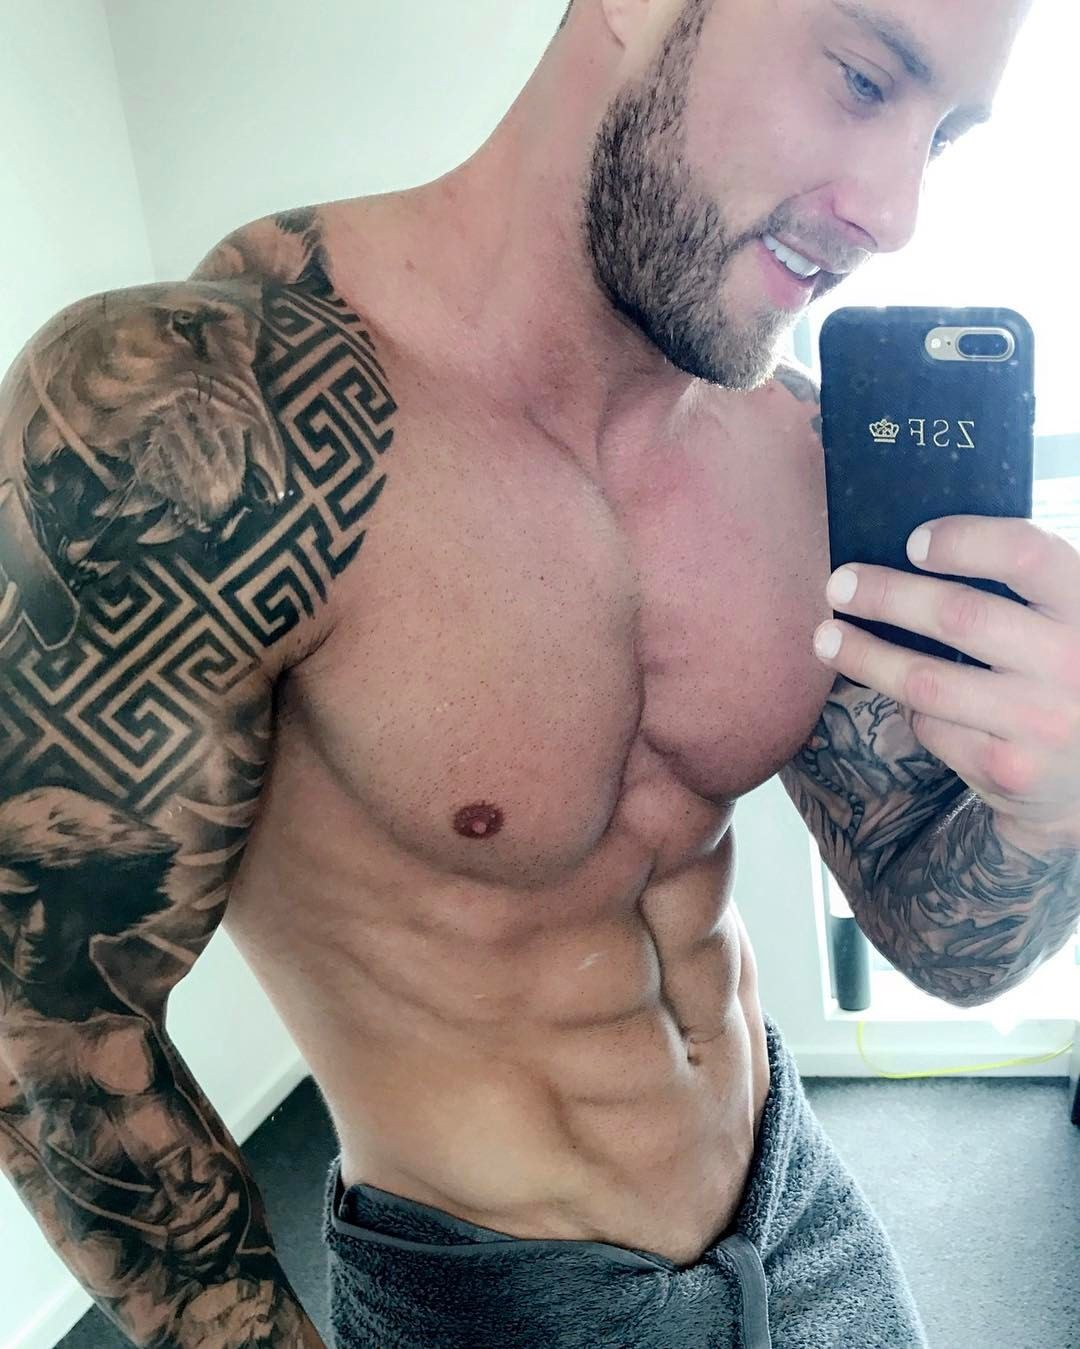 How To Lose Body Fat And Build Muscle